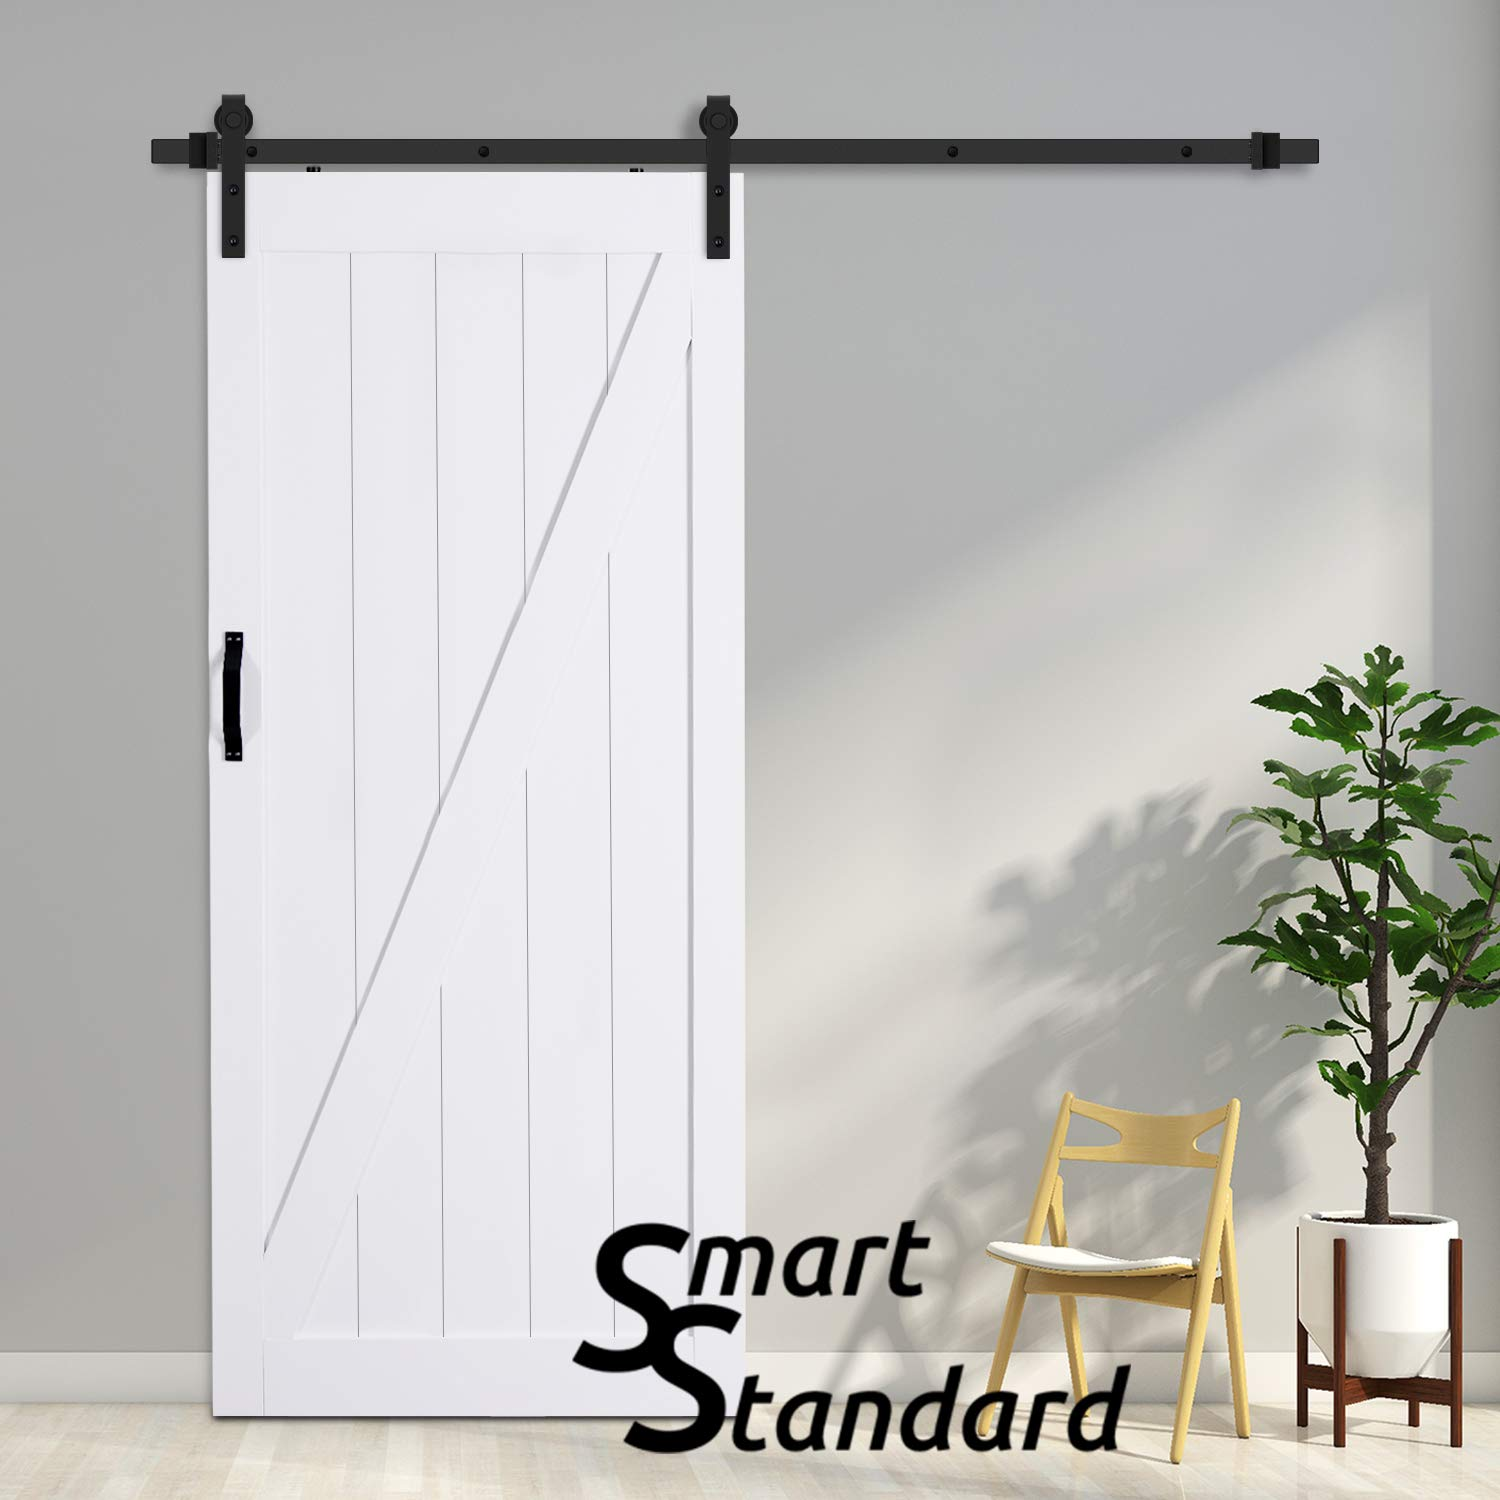 SMARTSTANDARD 36in x 84in Sliding Barn Door with 6.6ft BarnDoor Hardware Kit & Handle, Pre-Drilled Ready to Assemble Wood Slab Covered with Water-Proof PVC Surface (White Z-Frame Panel),